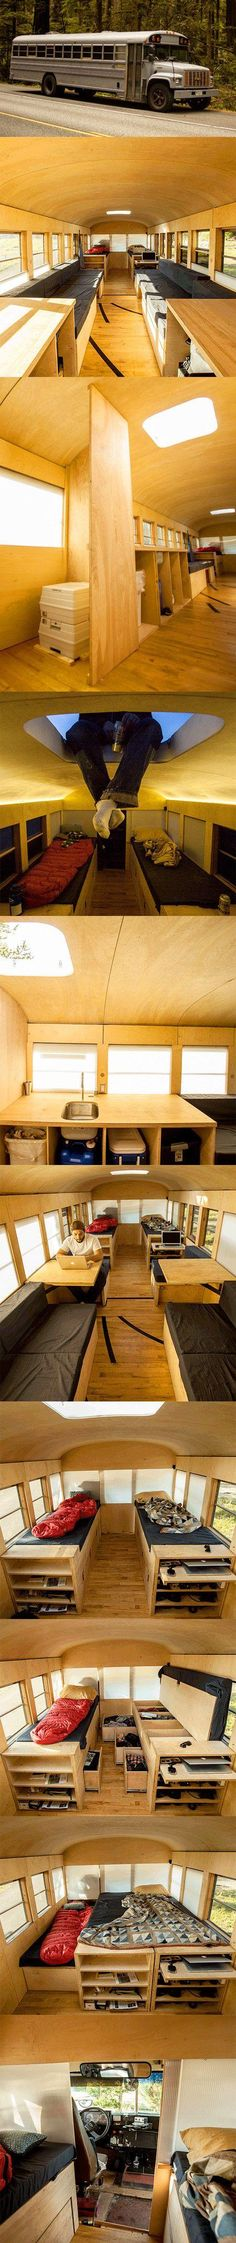 "Architecture student Hank Butitta converted old school bus into a 225 square foot mobile home with small kitchen, living room, and bedroom. Maybe not a ""home"" but camper and/or party bus."